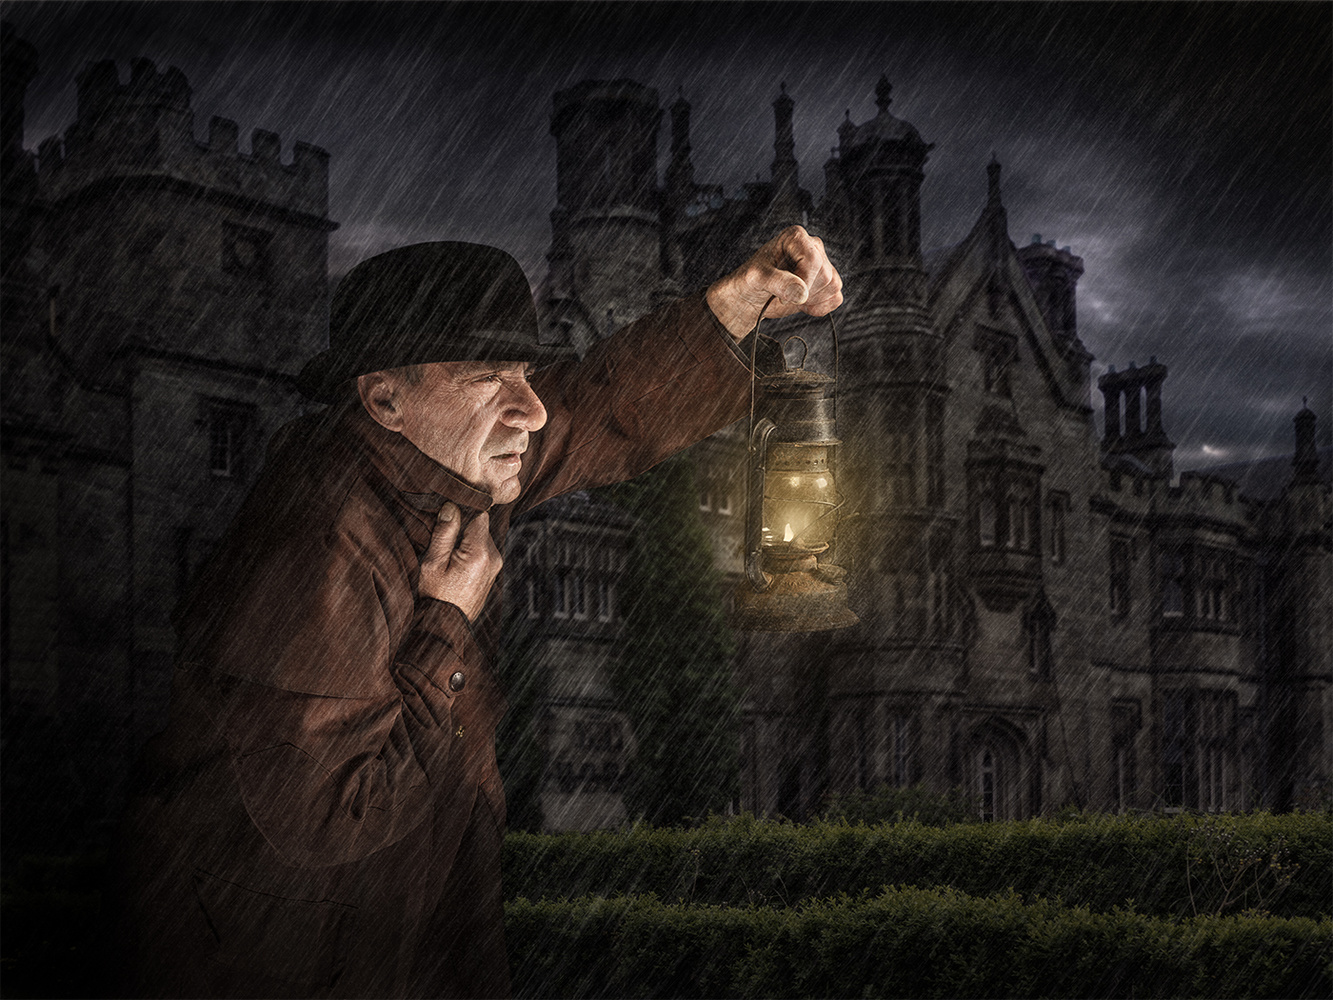 Mystery at manor house by matthew jones